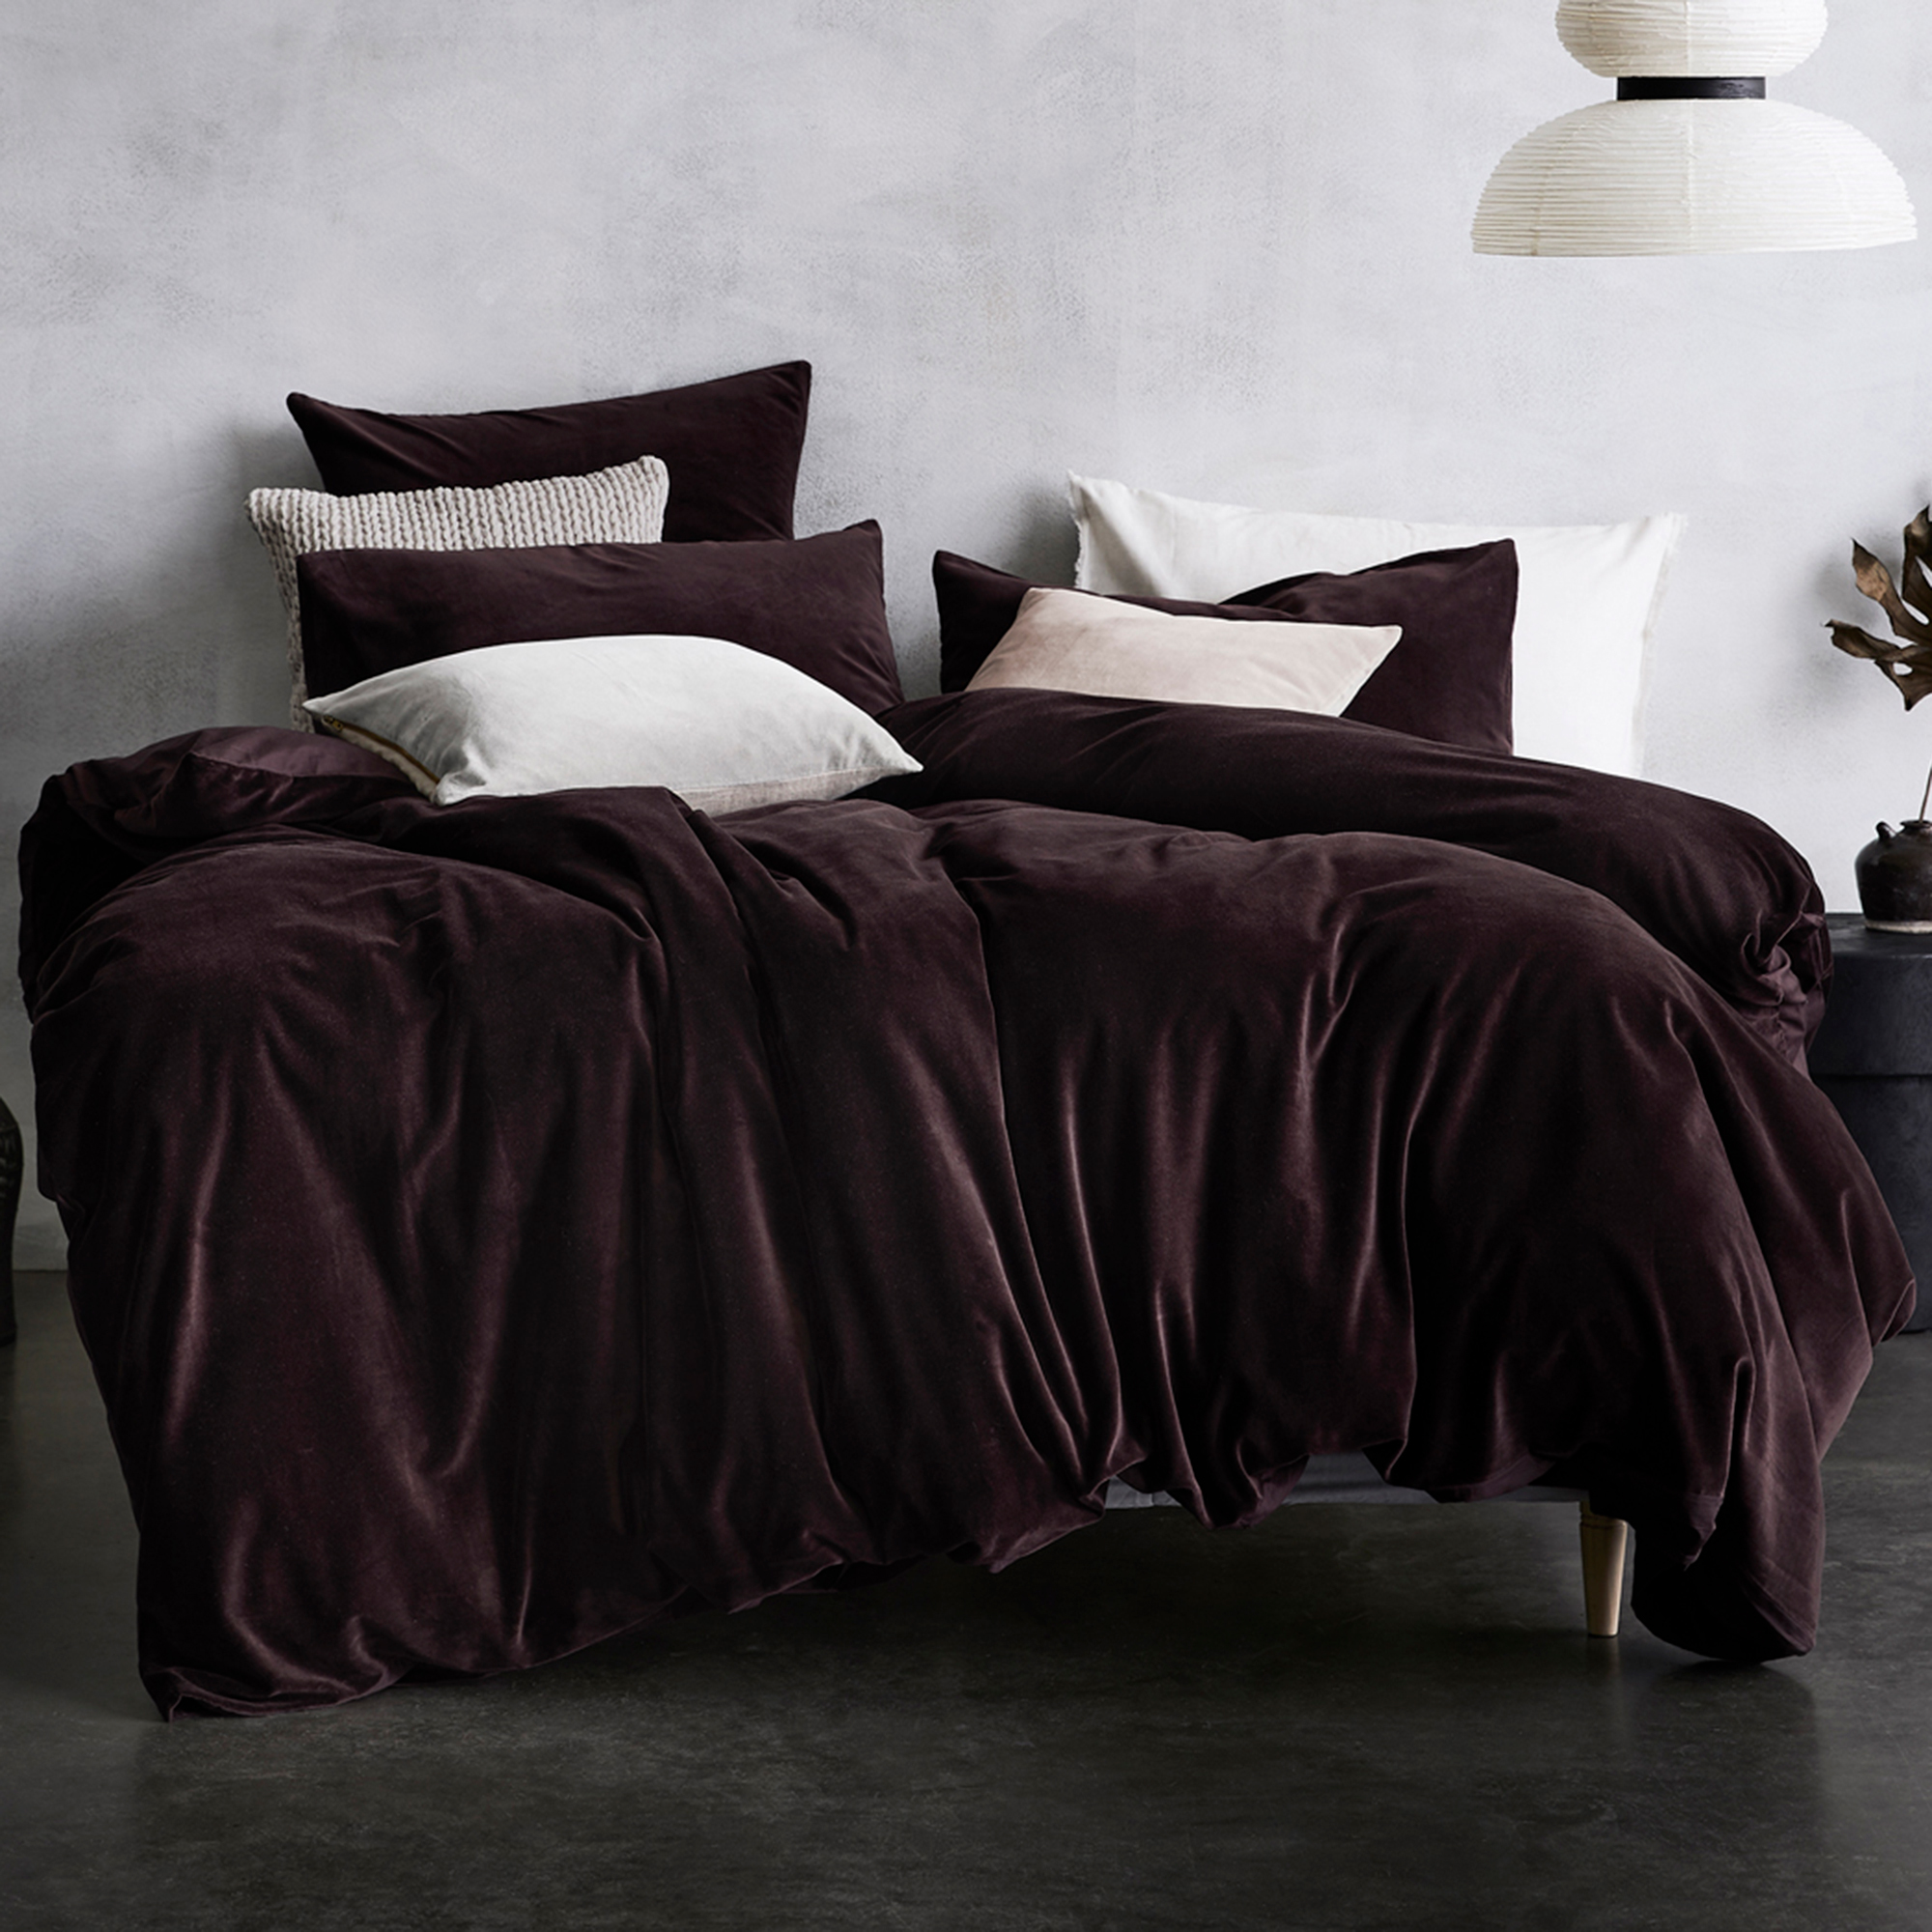 listed set temple bedding sku is quilt cover velvet following webster silver the numbers under bed also manufacturer sometimes